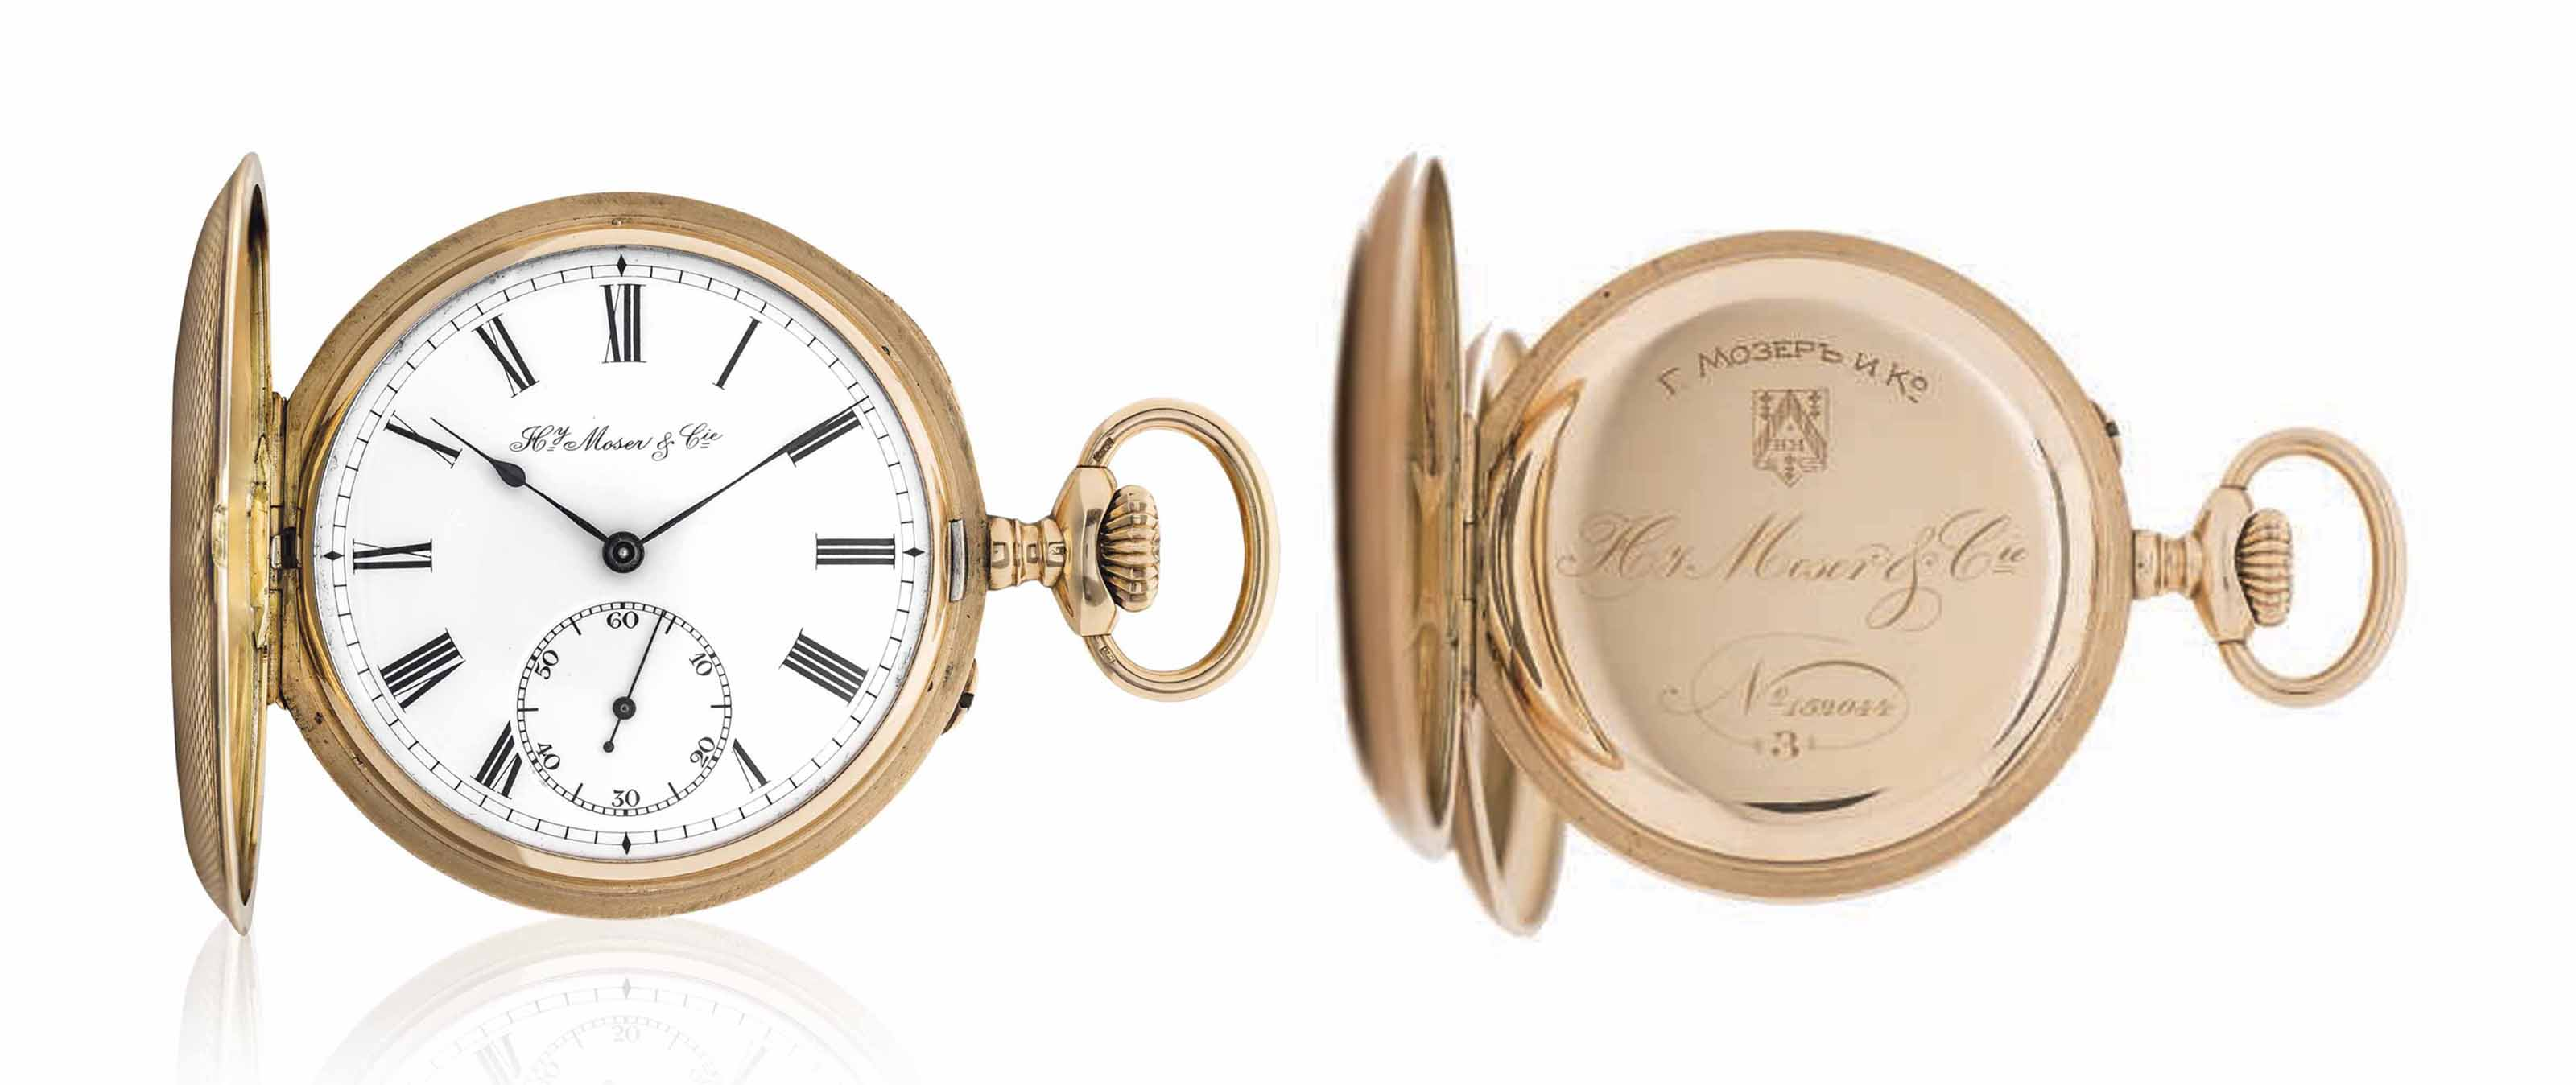 H. MOSER & CIE. A VERY FINE 14K GOLD HUNTER CASE KEYLESS LEVER WATCH, MADE FOR THE RUSSIAN MARKET